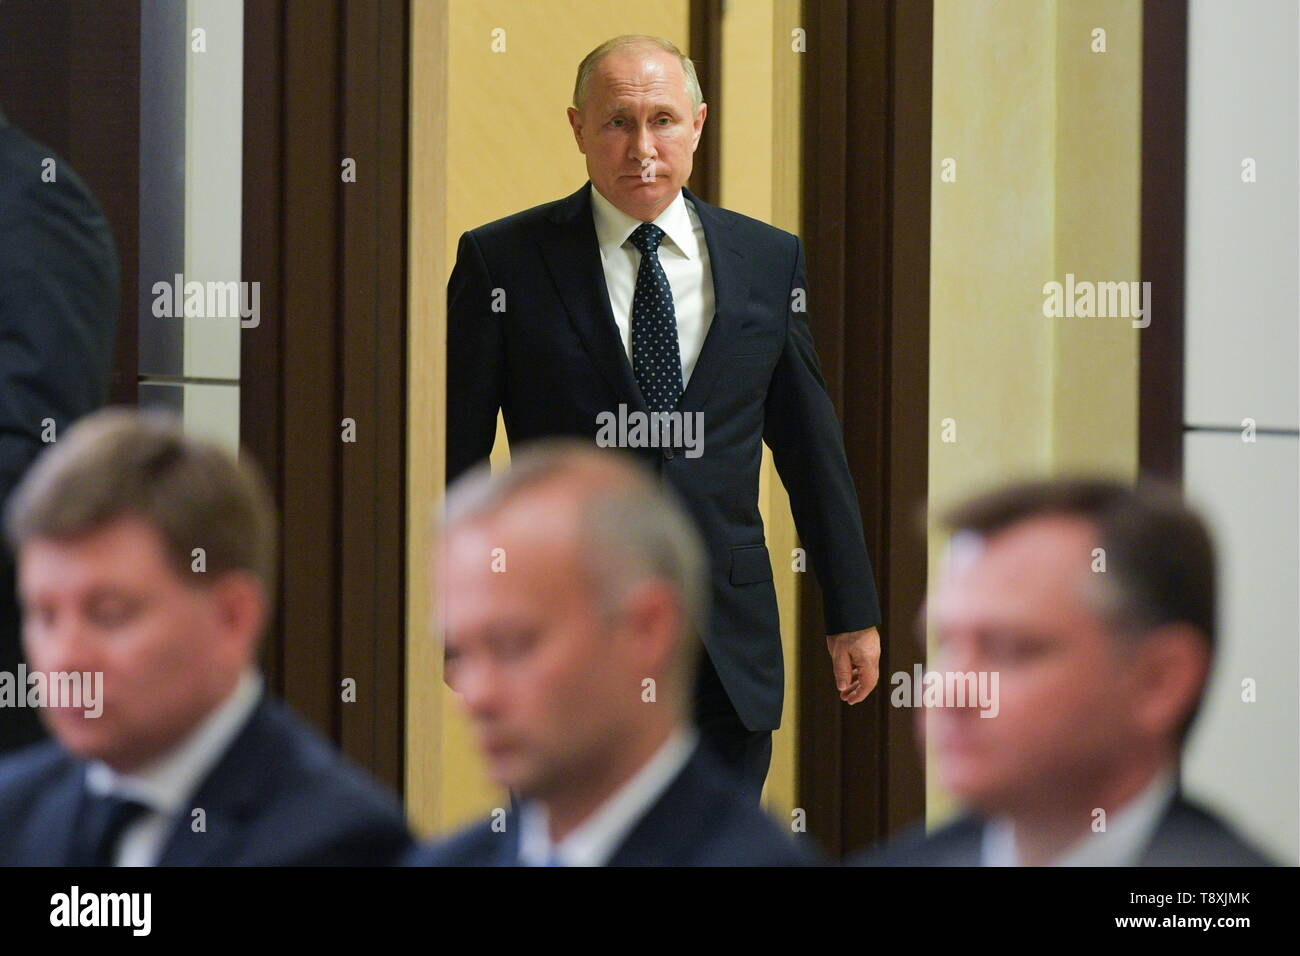 Sochi, Russia. 15th May, 2019. SOCHI, RUSSIA - MAY 15, 2019: Russia's President Vladimir Putin (back) holds a meeting at Bocharov Ruchei residence to discuss military aviation issues. Alexei Druzhinin/Russian Presidential Press and Information Office/TASS Credit: ITAR-TASS News Agency/Alamy Live News - Stock Image